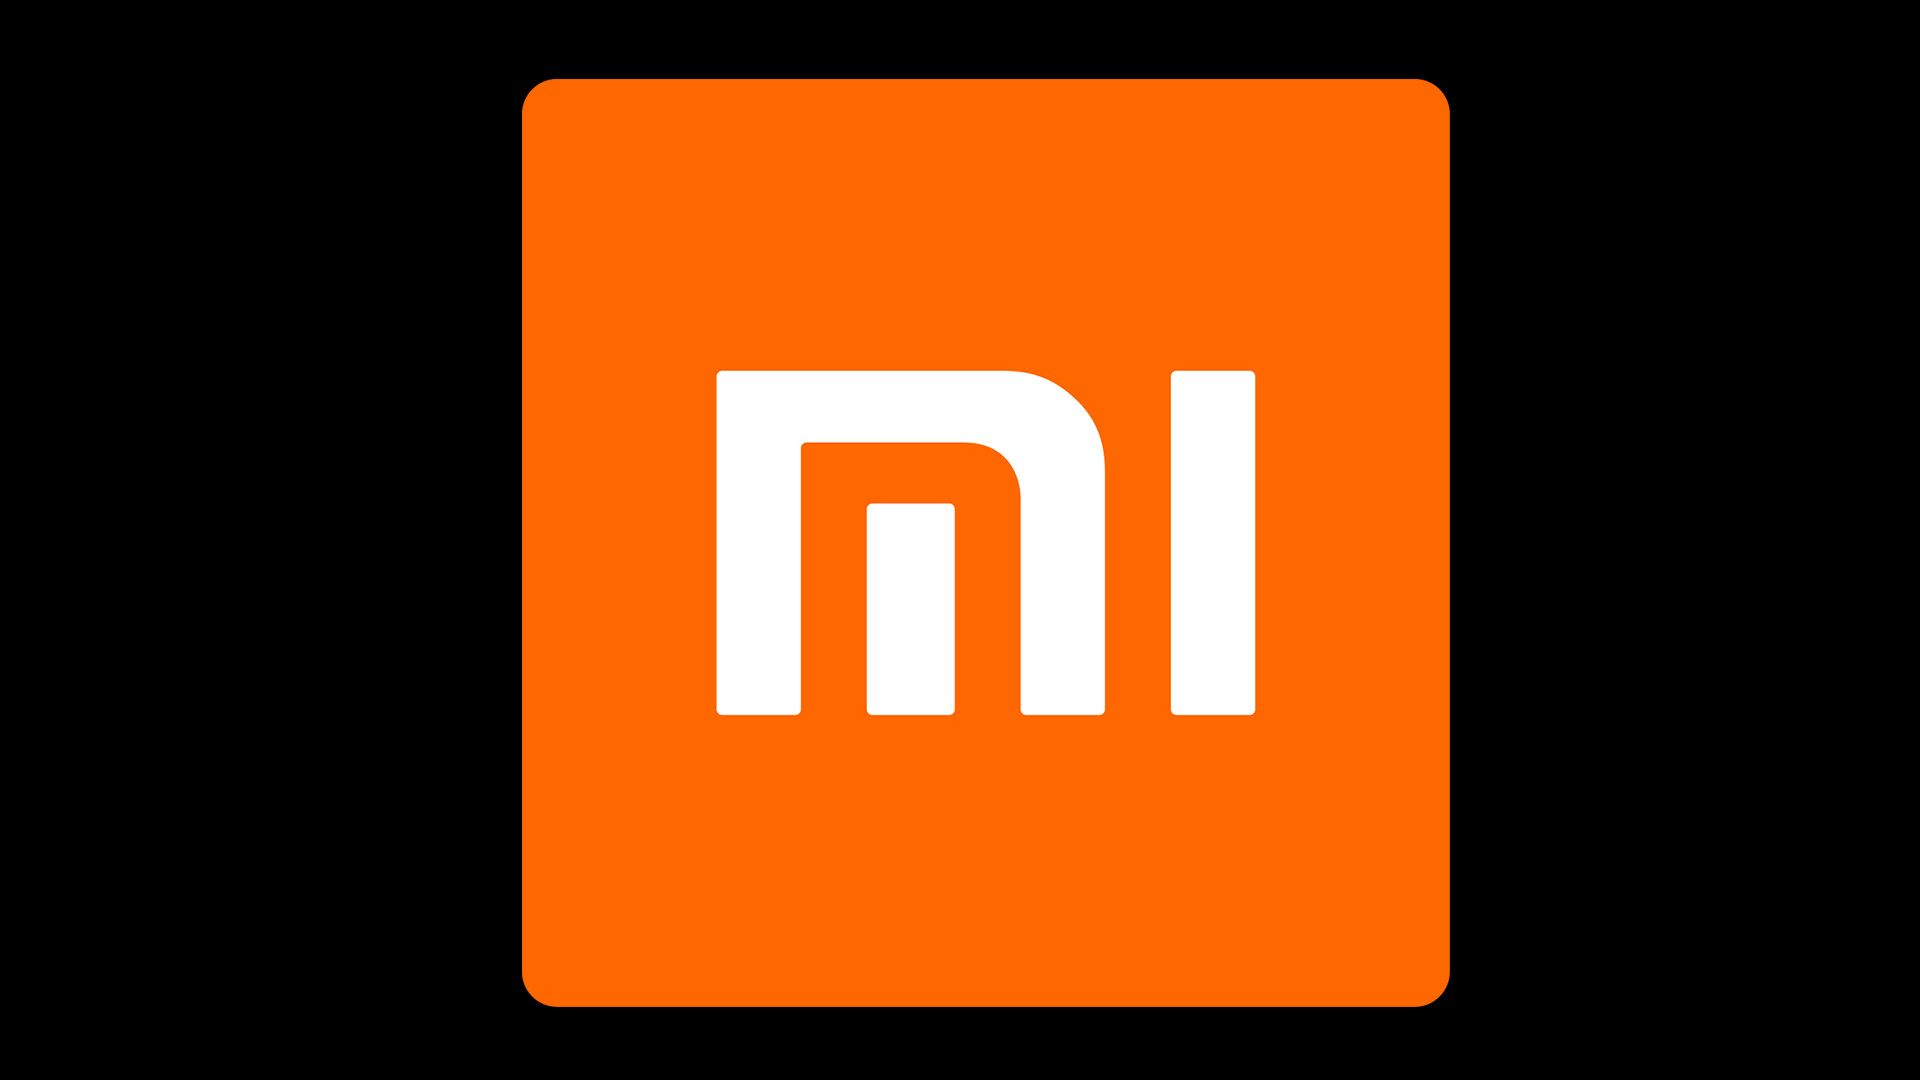 Xiaomi Logo - Xiaomi logo, symbol, meaning, History and Evolution